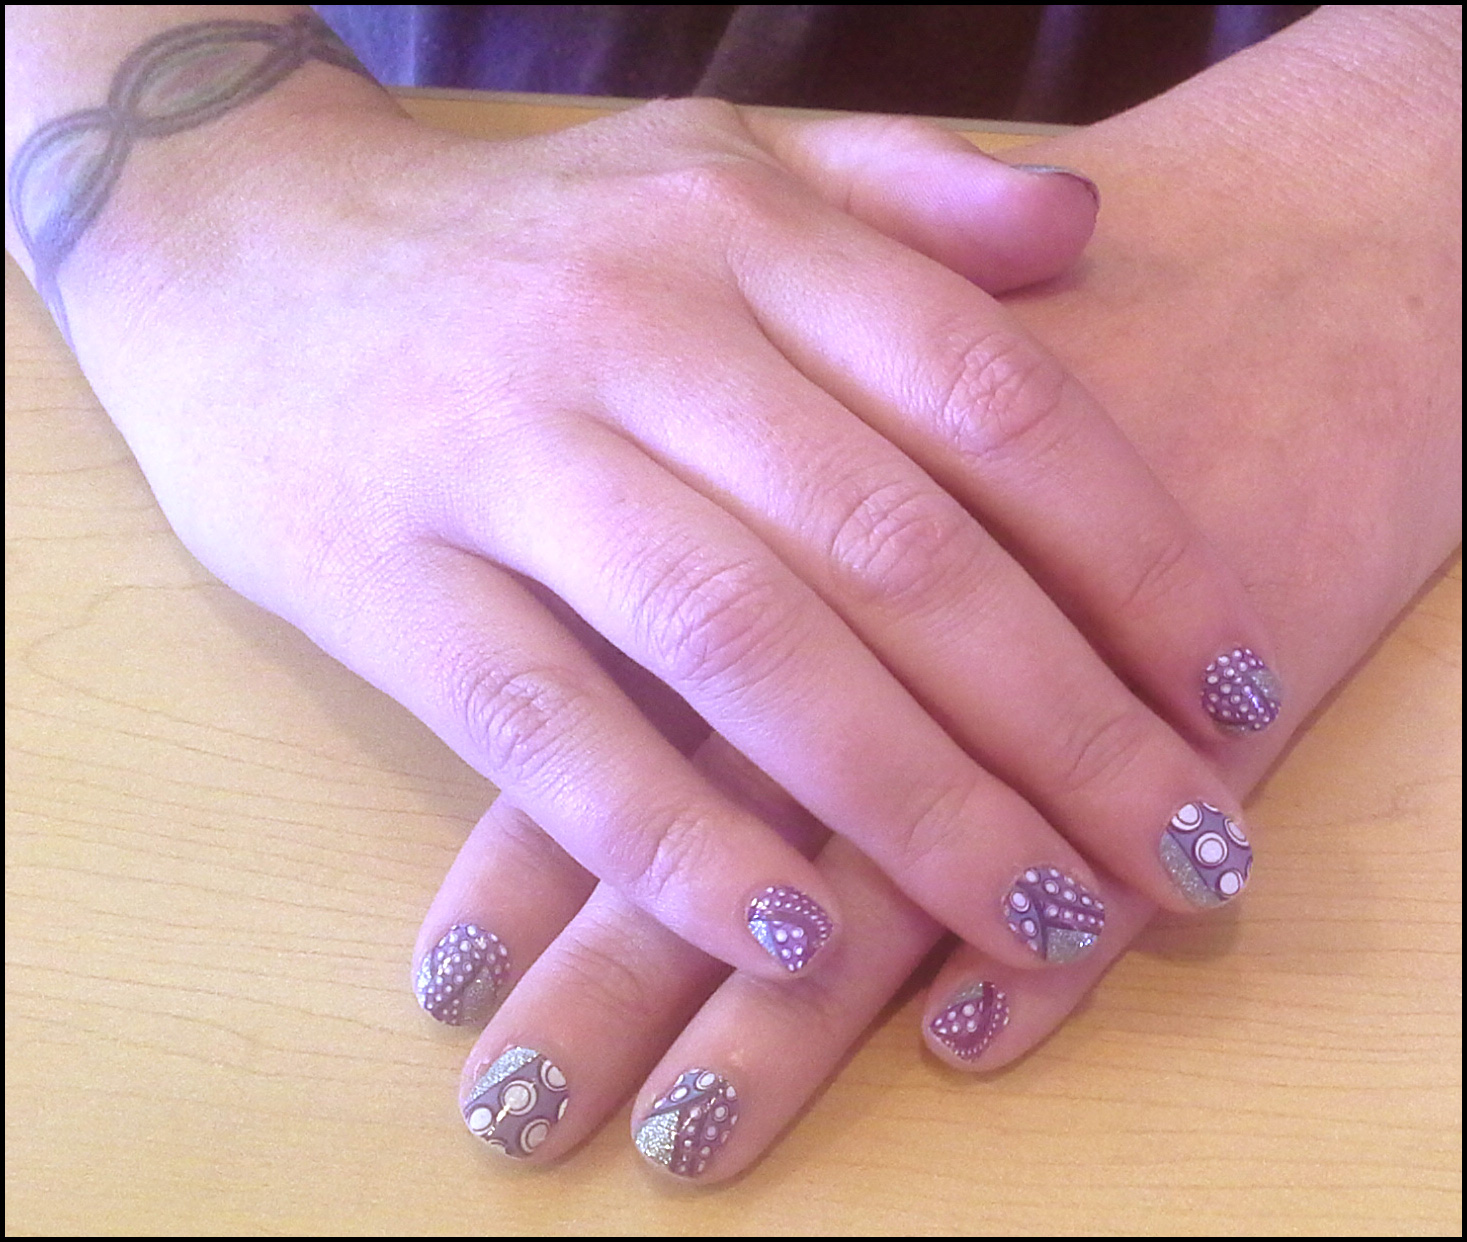 Nailed It! Review of Espionage Cosmetics new nail wraps | The Geek ...